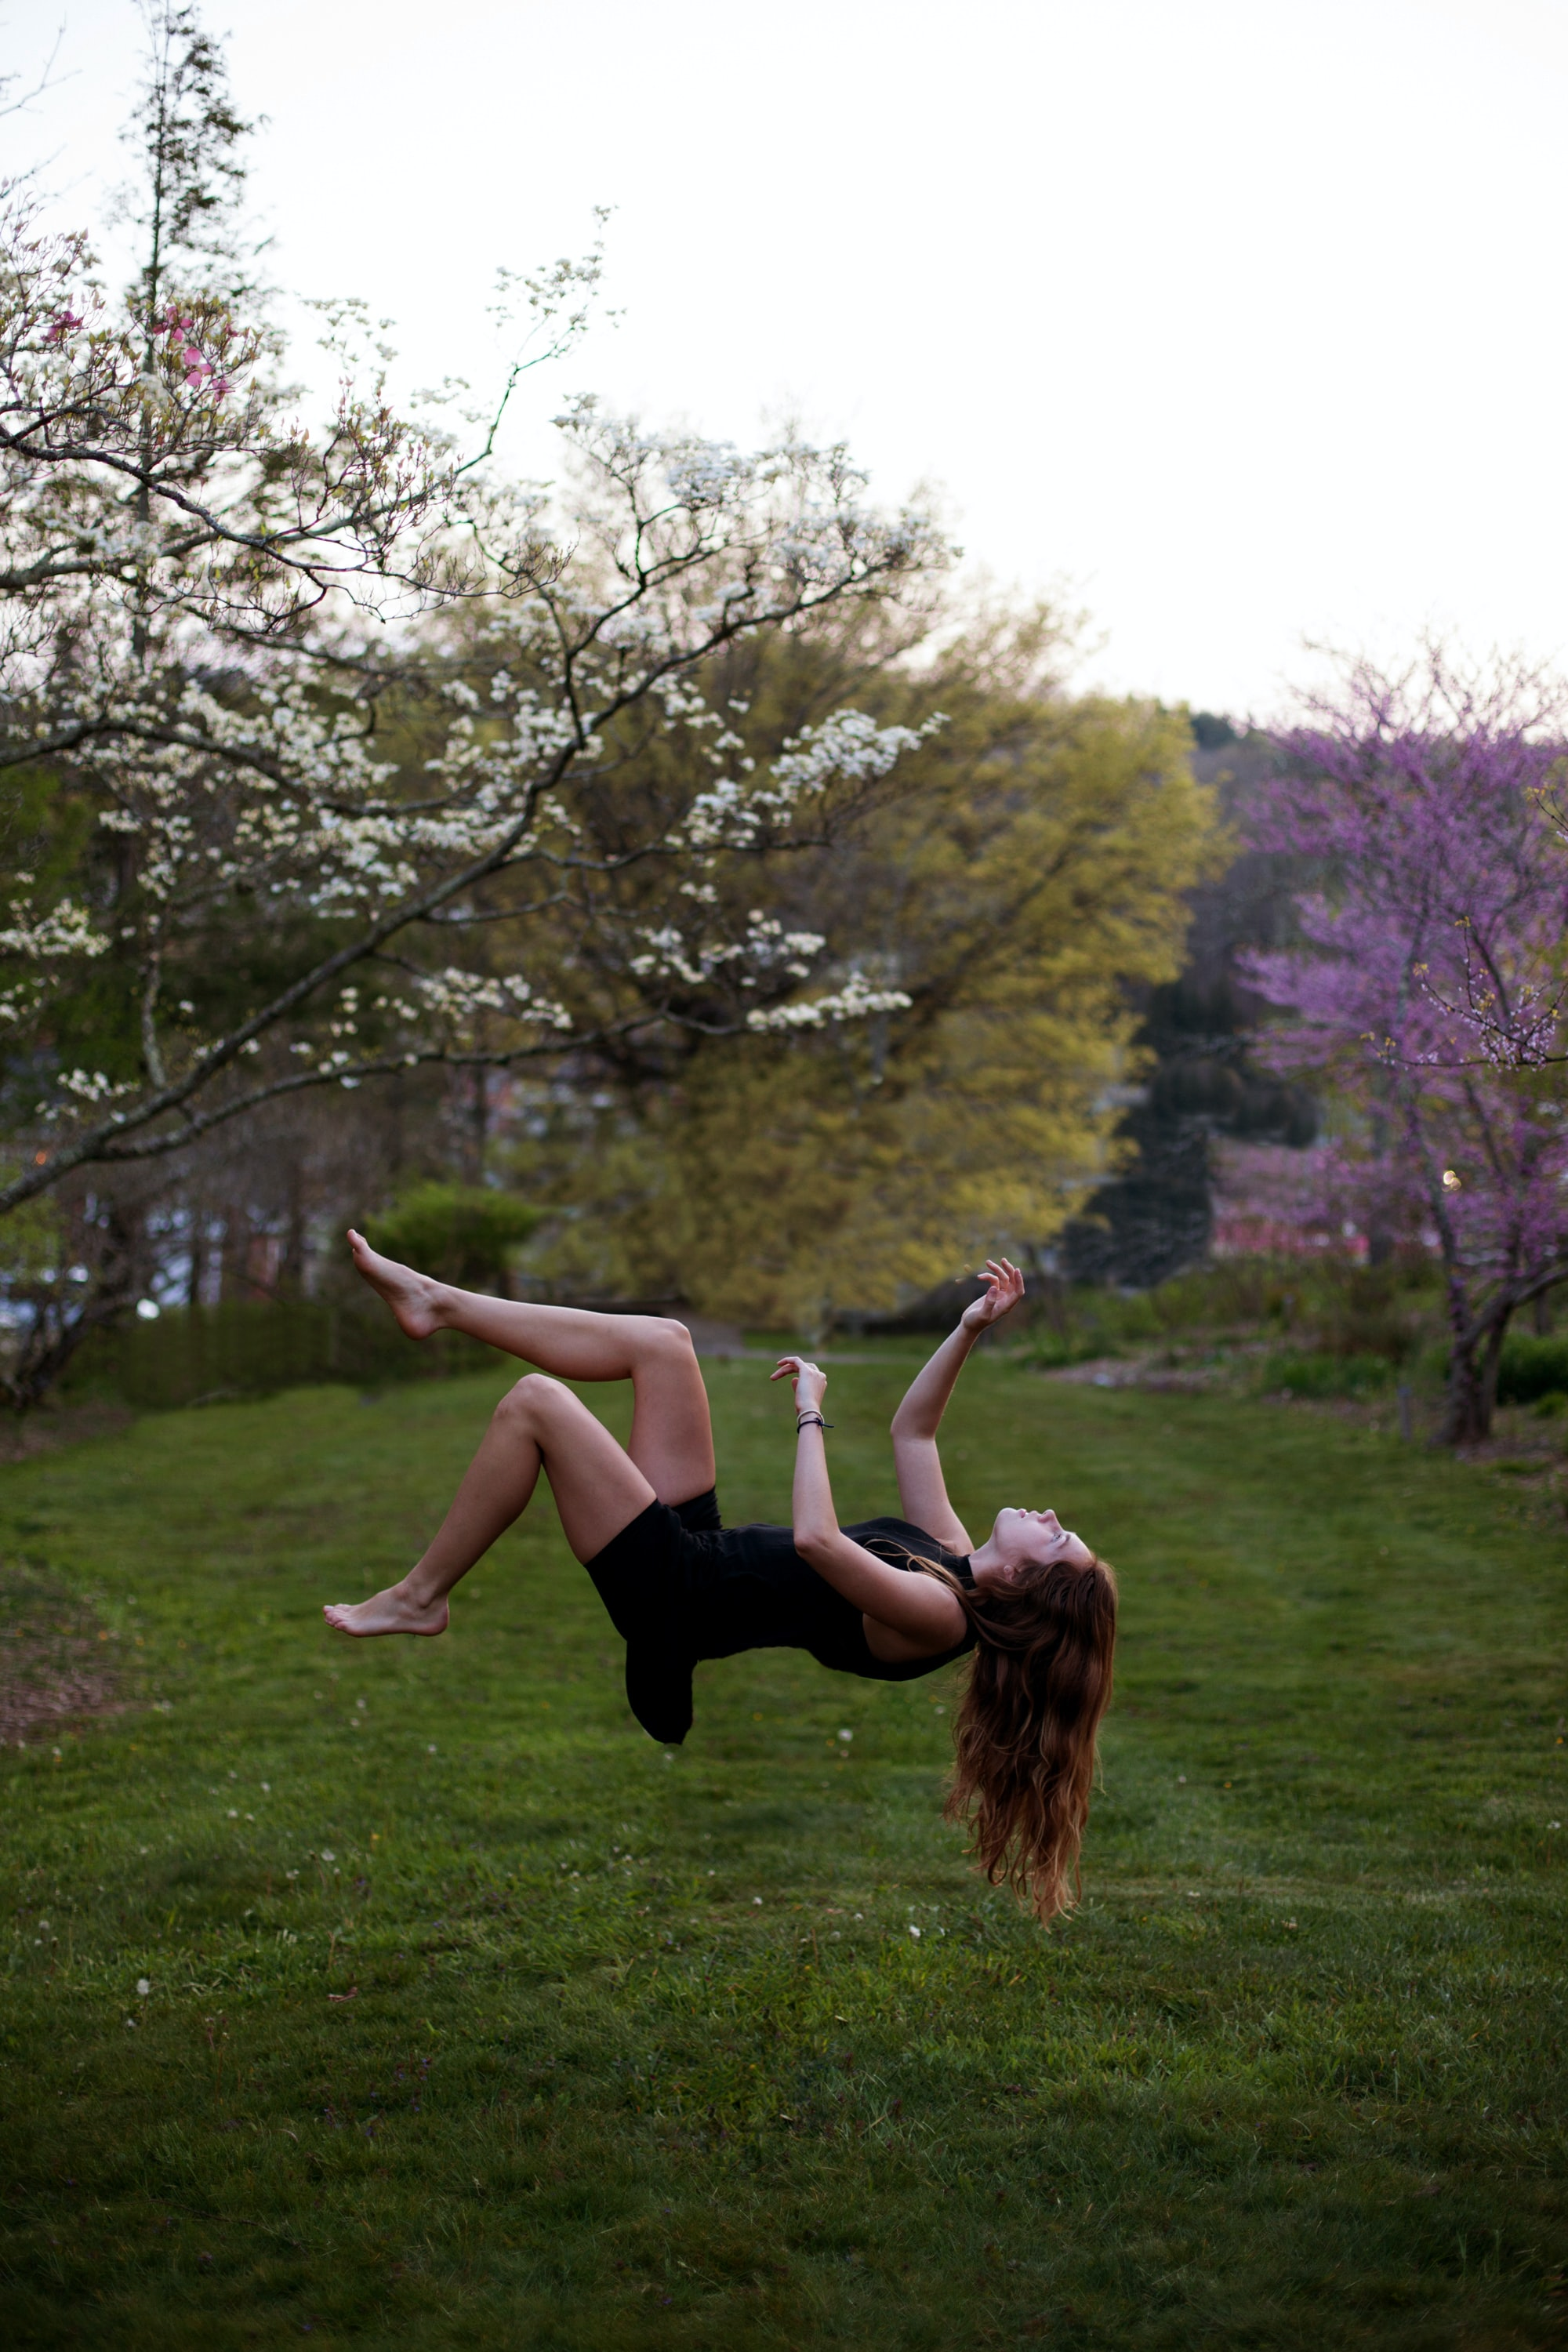 A person floating or falling on grass in a meadow in Boone